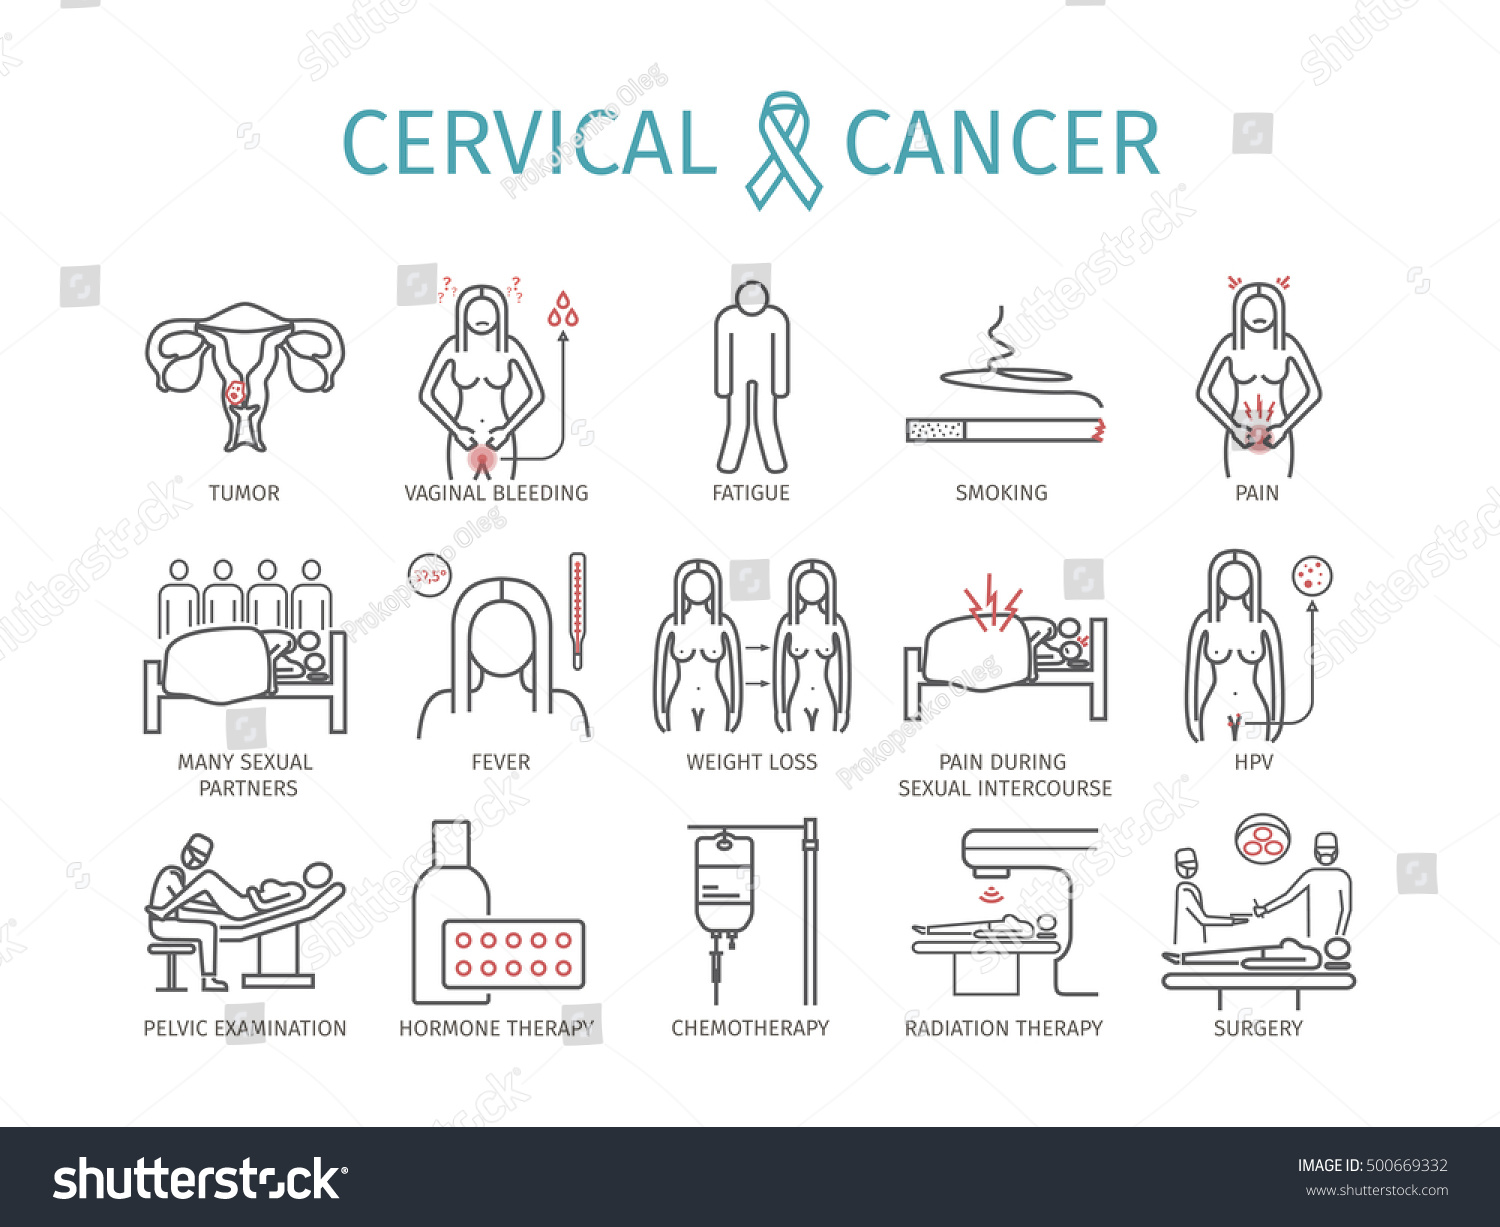 Sexual partners and cervical cancer